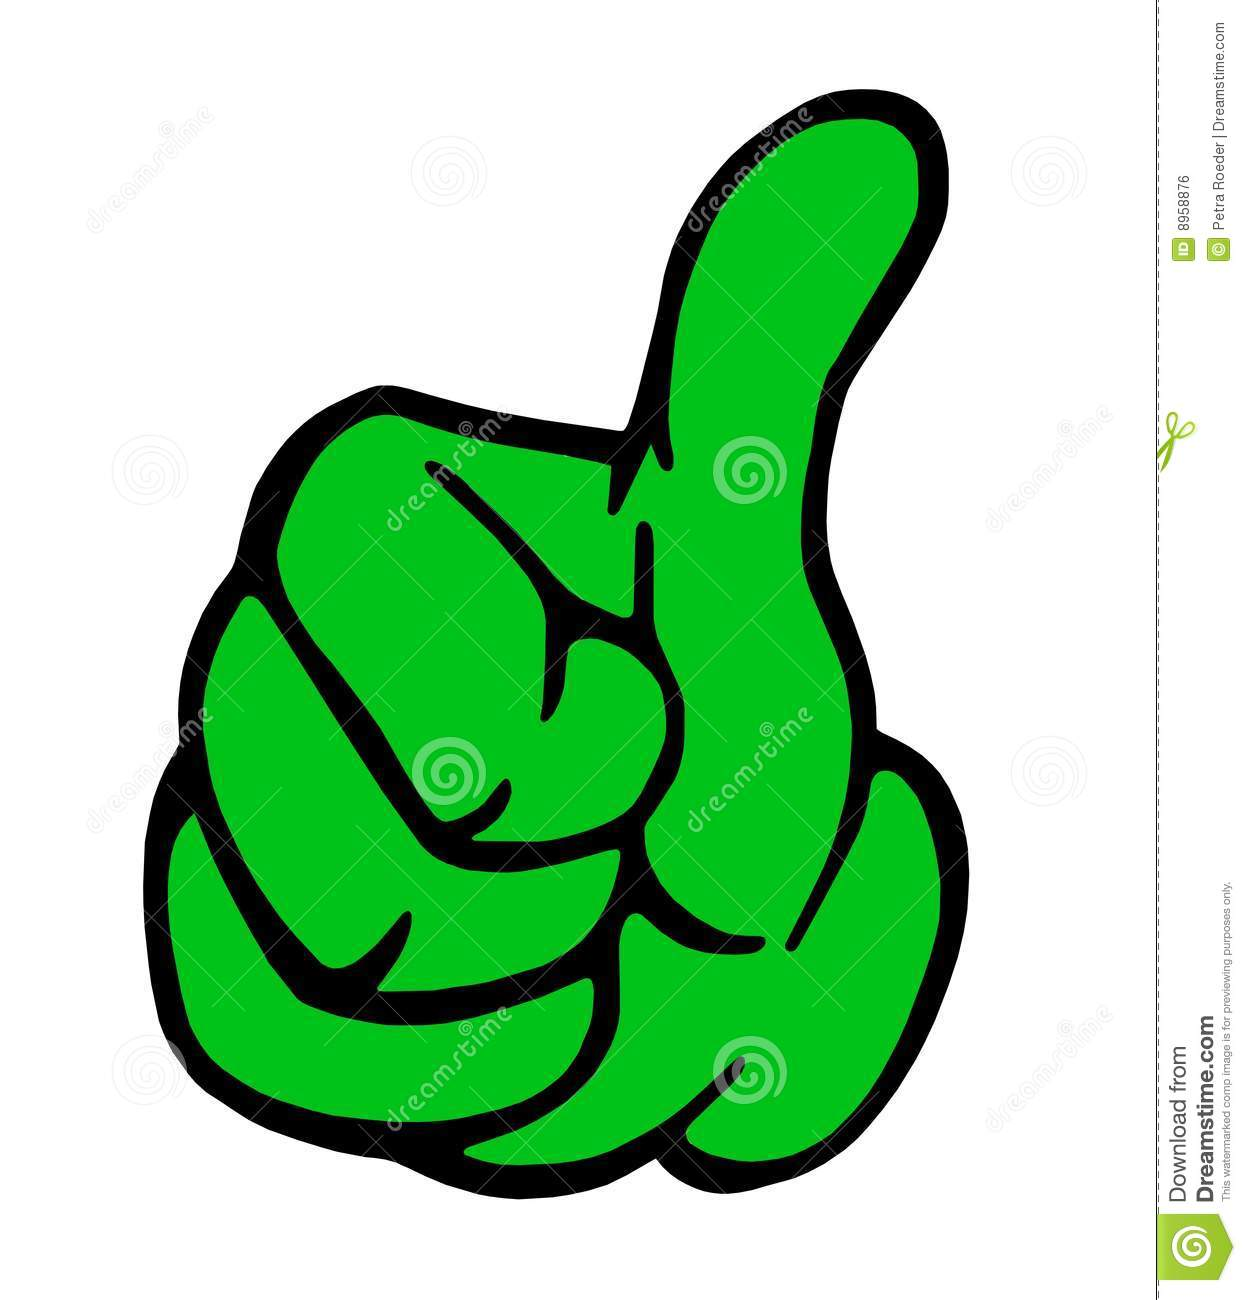 Green thumbs up clipart svg transparent Green Thumbs Up Hand Sign Royalty Free Stock Image - Image: 8958876 svg transparent